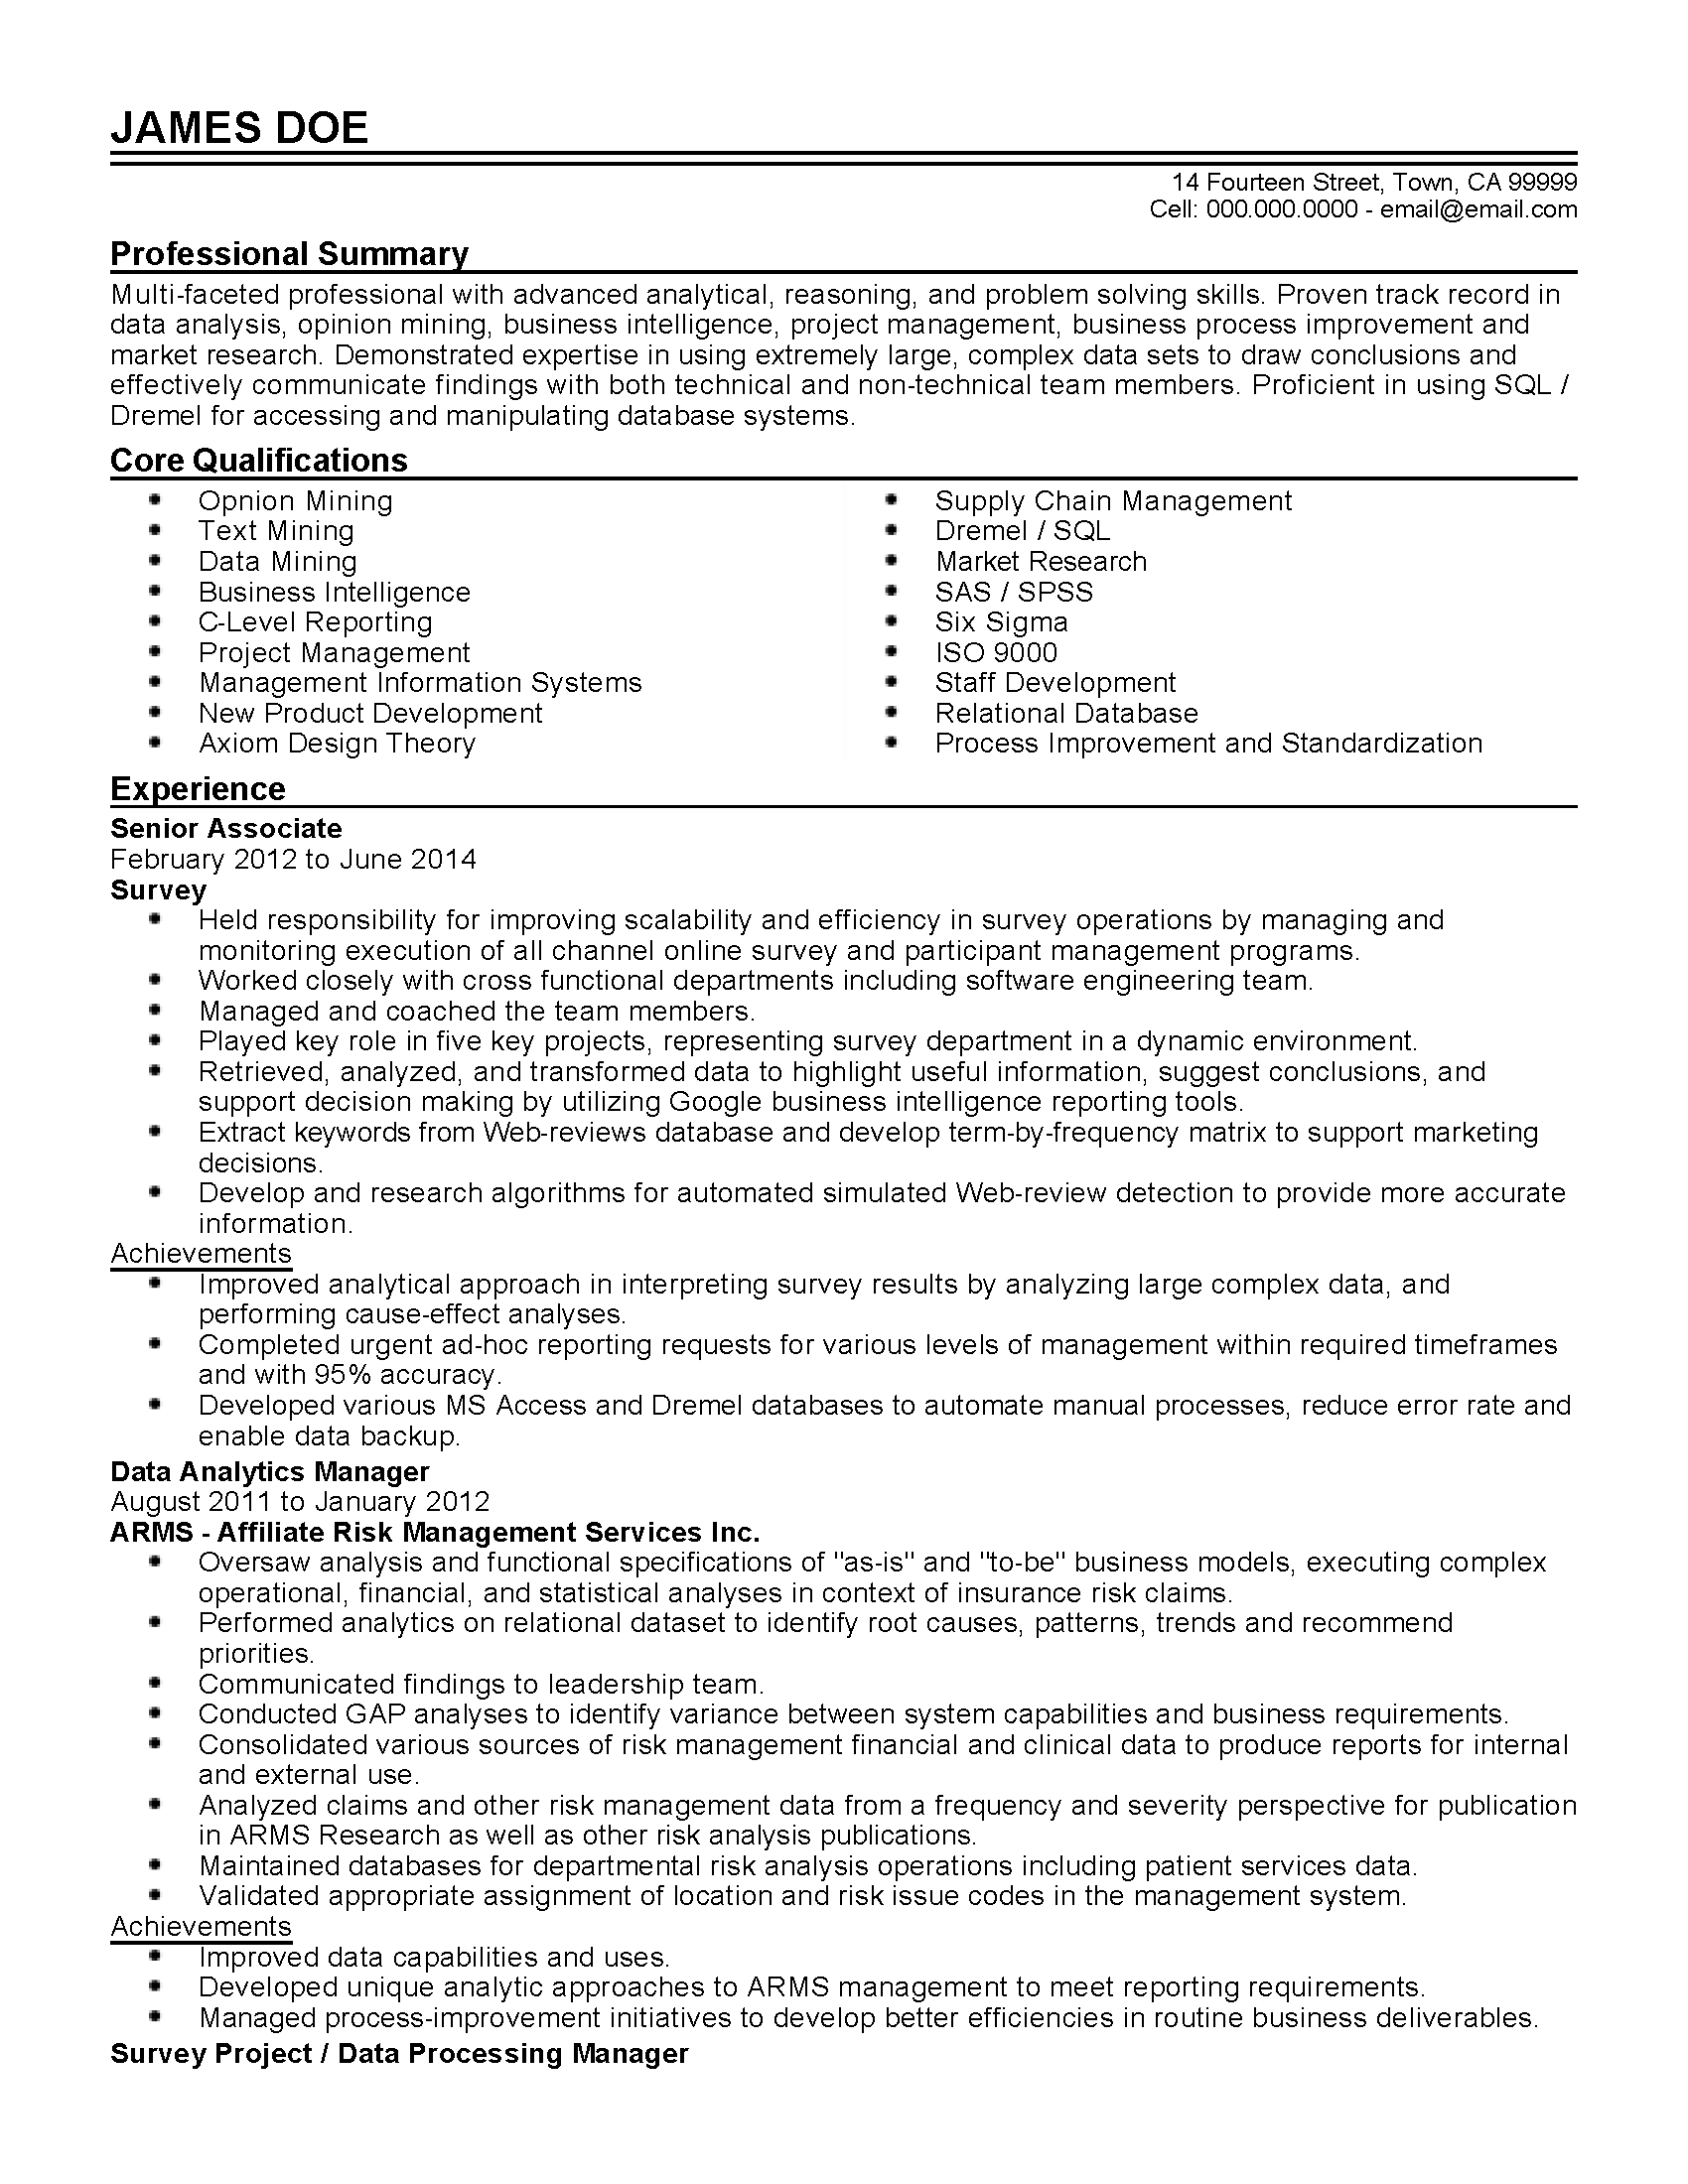 michigan works resume maker job seekers michigan works association manager resume sample front training resume jpgcb